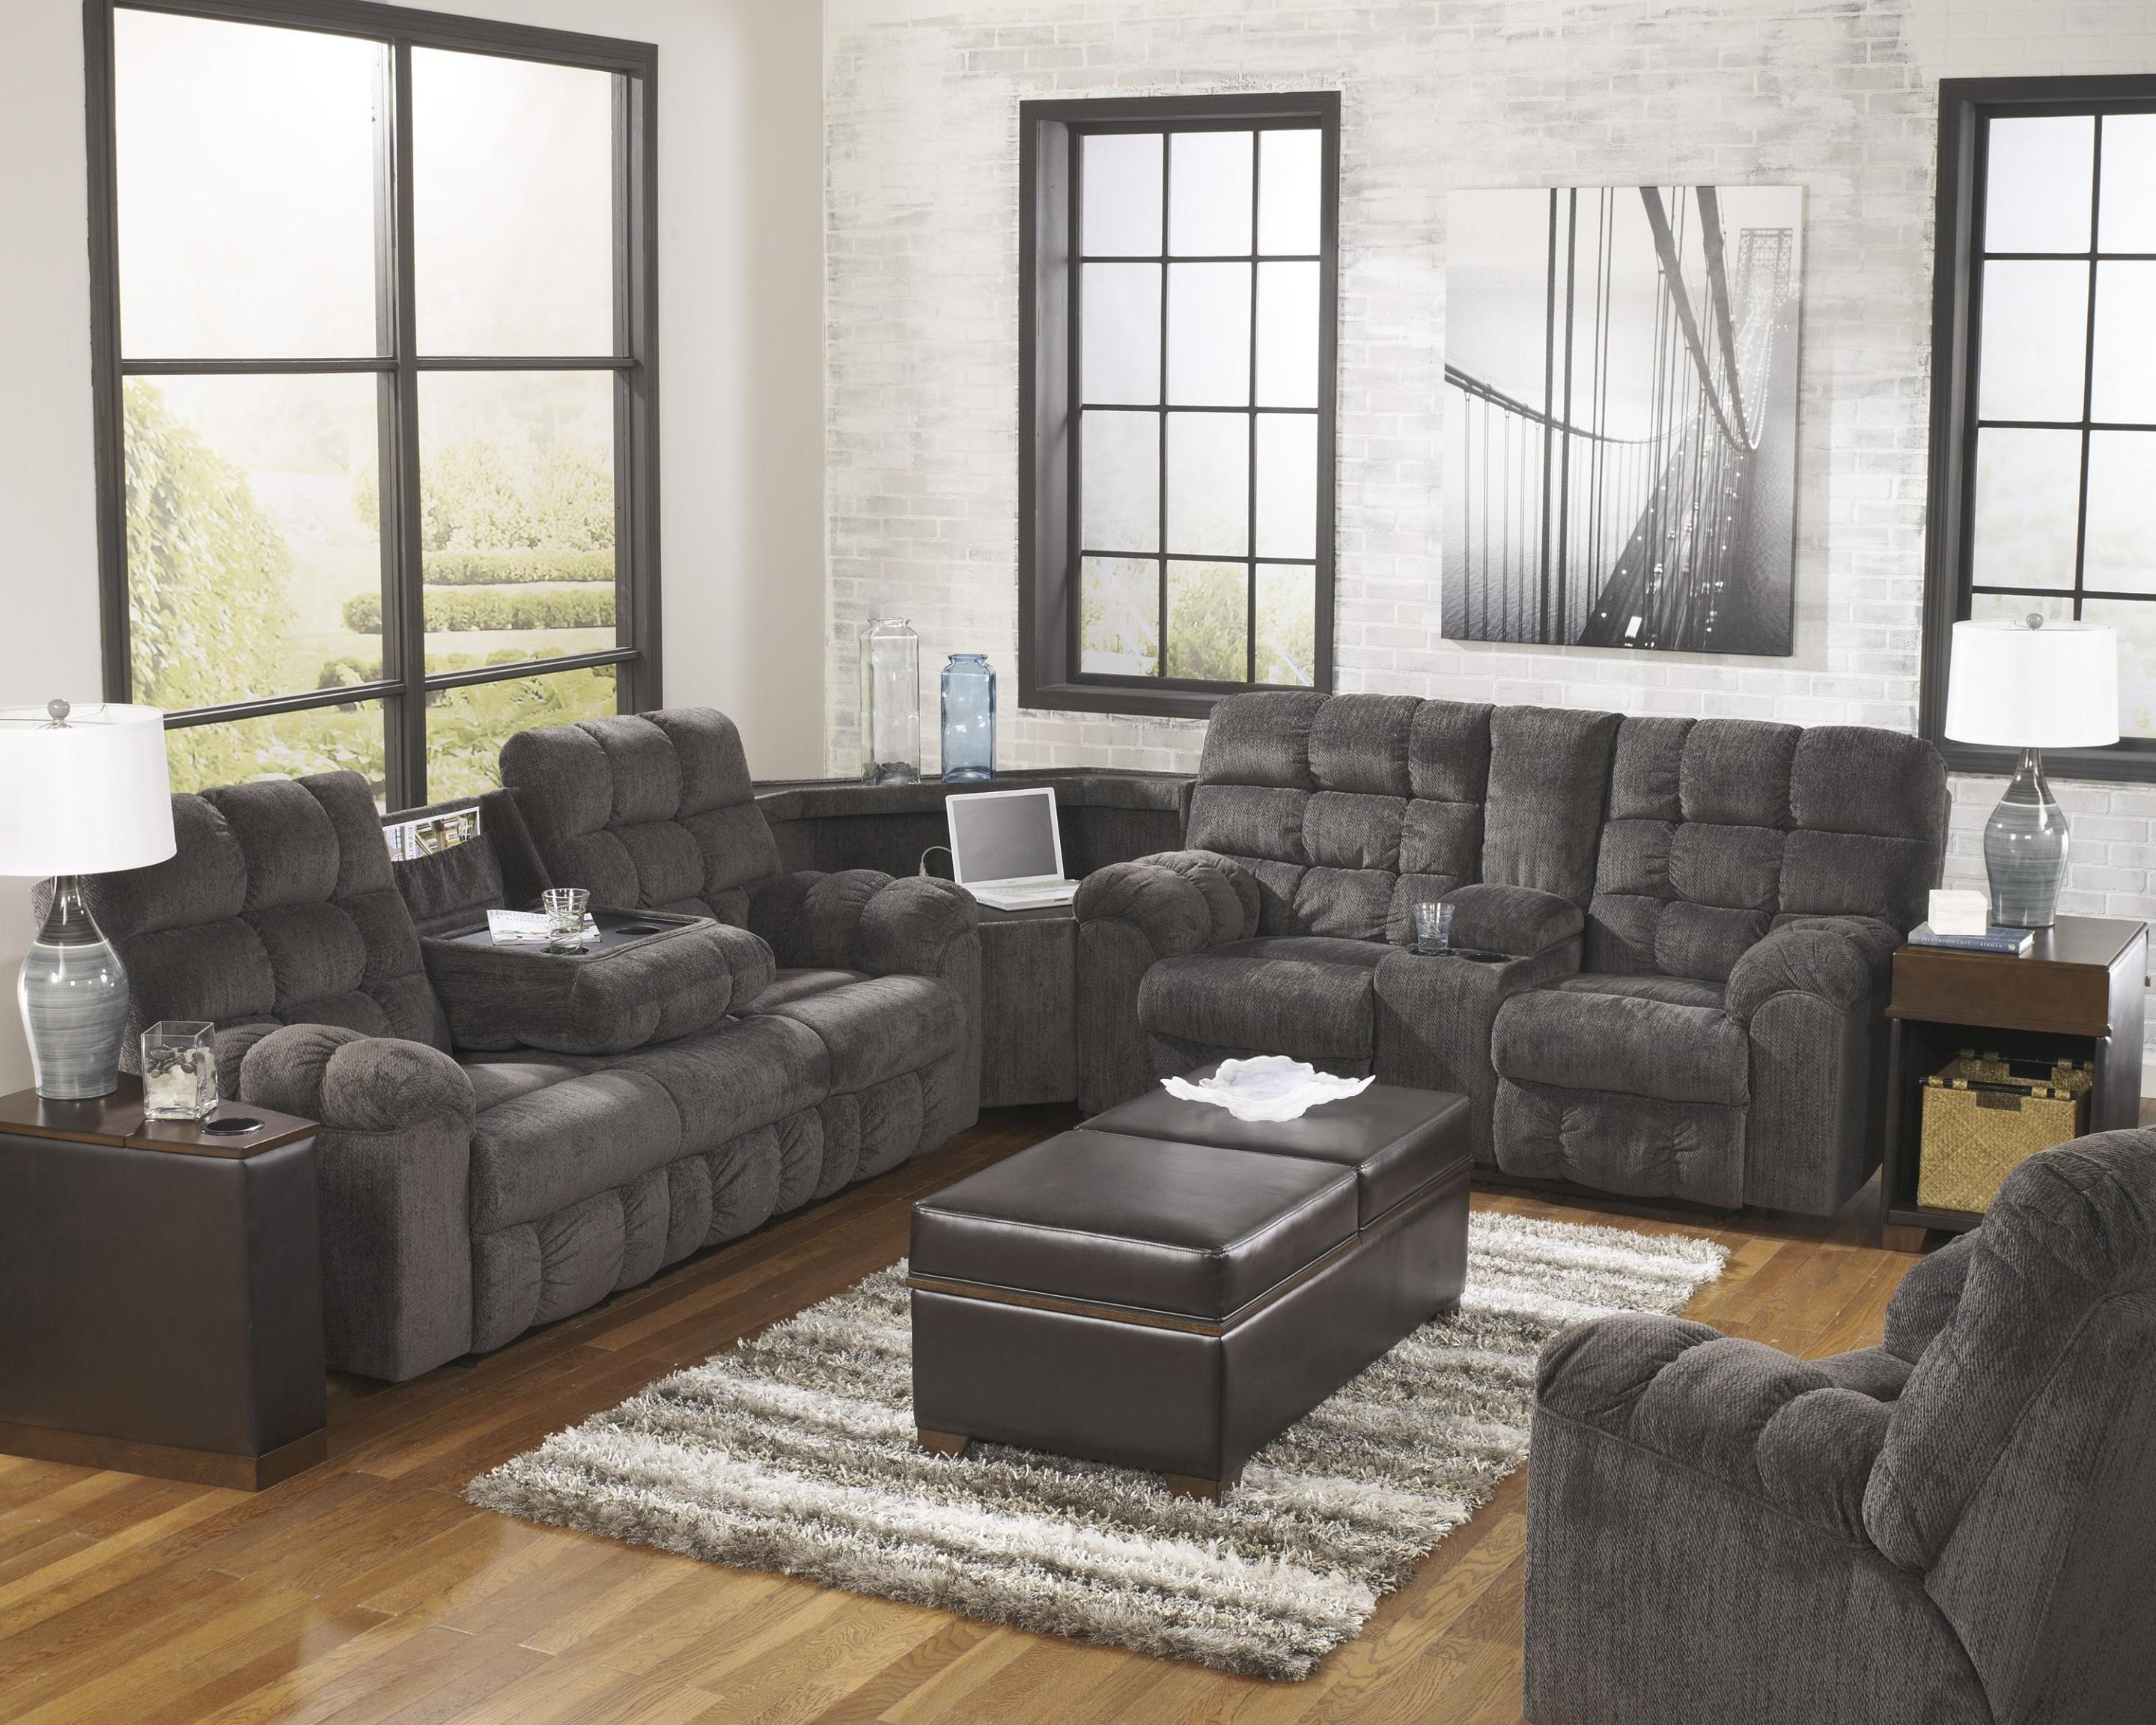 Image of: Cheap Sectional Sofas With Recliners